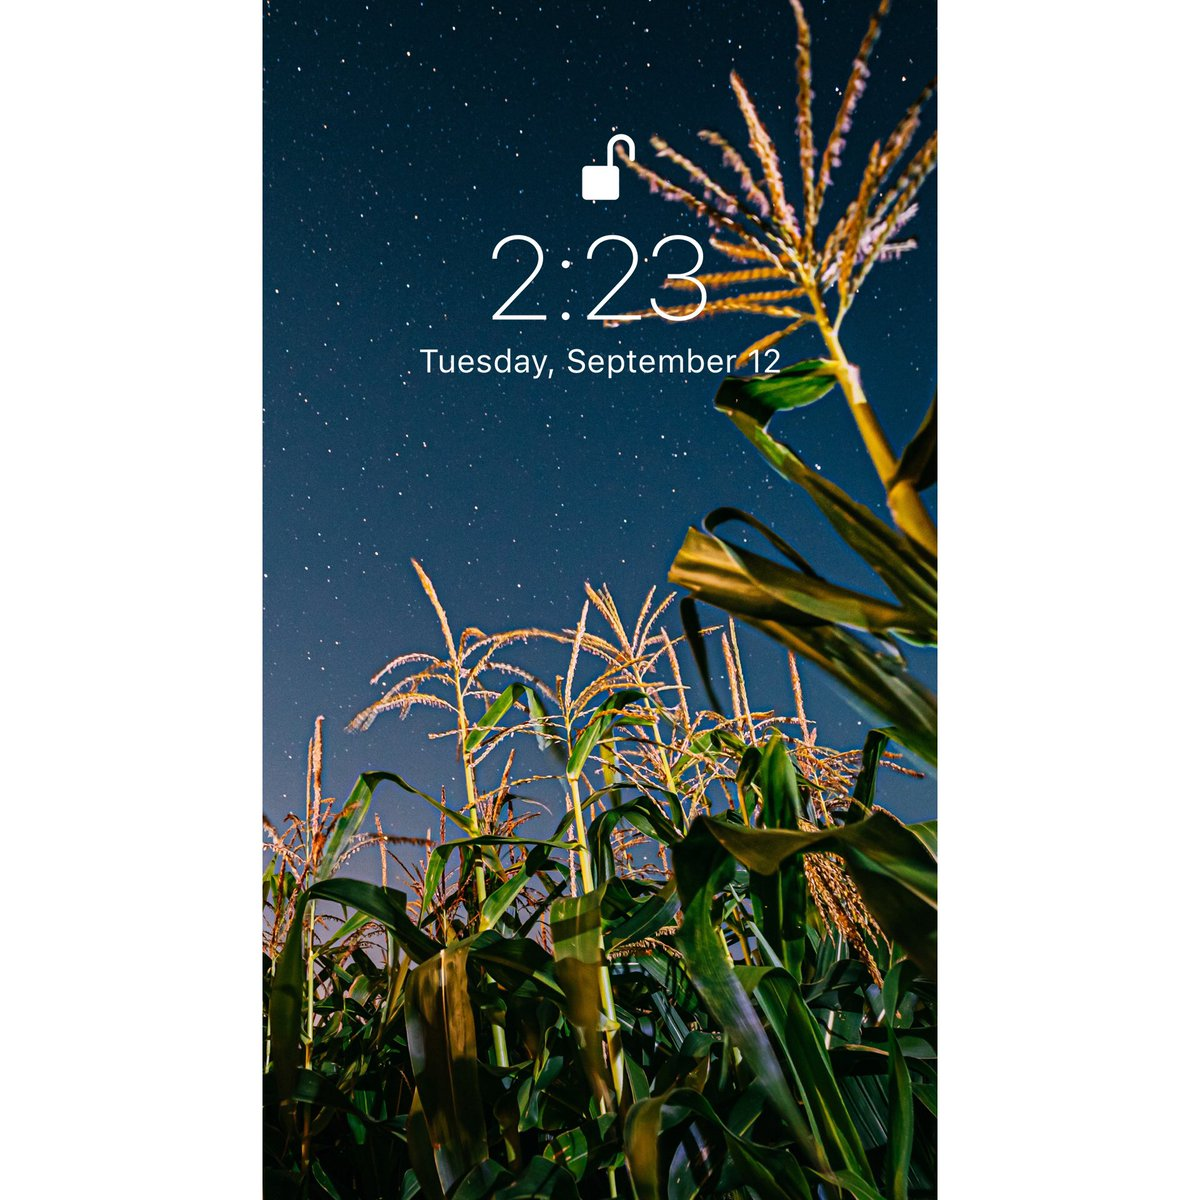 Lie in the field and look at the stars✨  #wallpaper #screensaver #background #sfondi #papeisdeparede #papeisdeparedetumblr #wallpaperhd #wallpaperiphone #vibes #nature #space #starrynight #field https://t.co/WMEkHK1nkZ